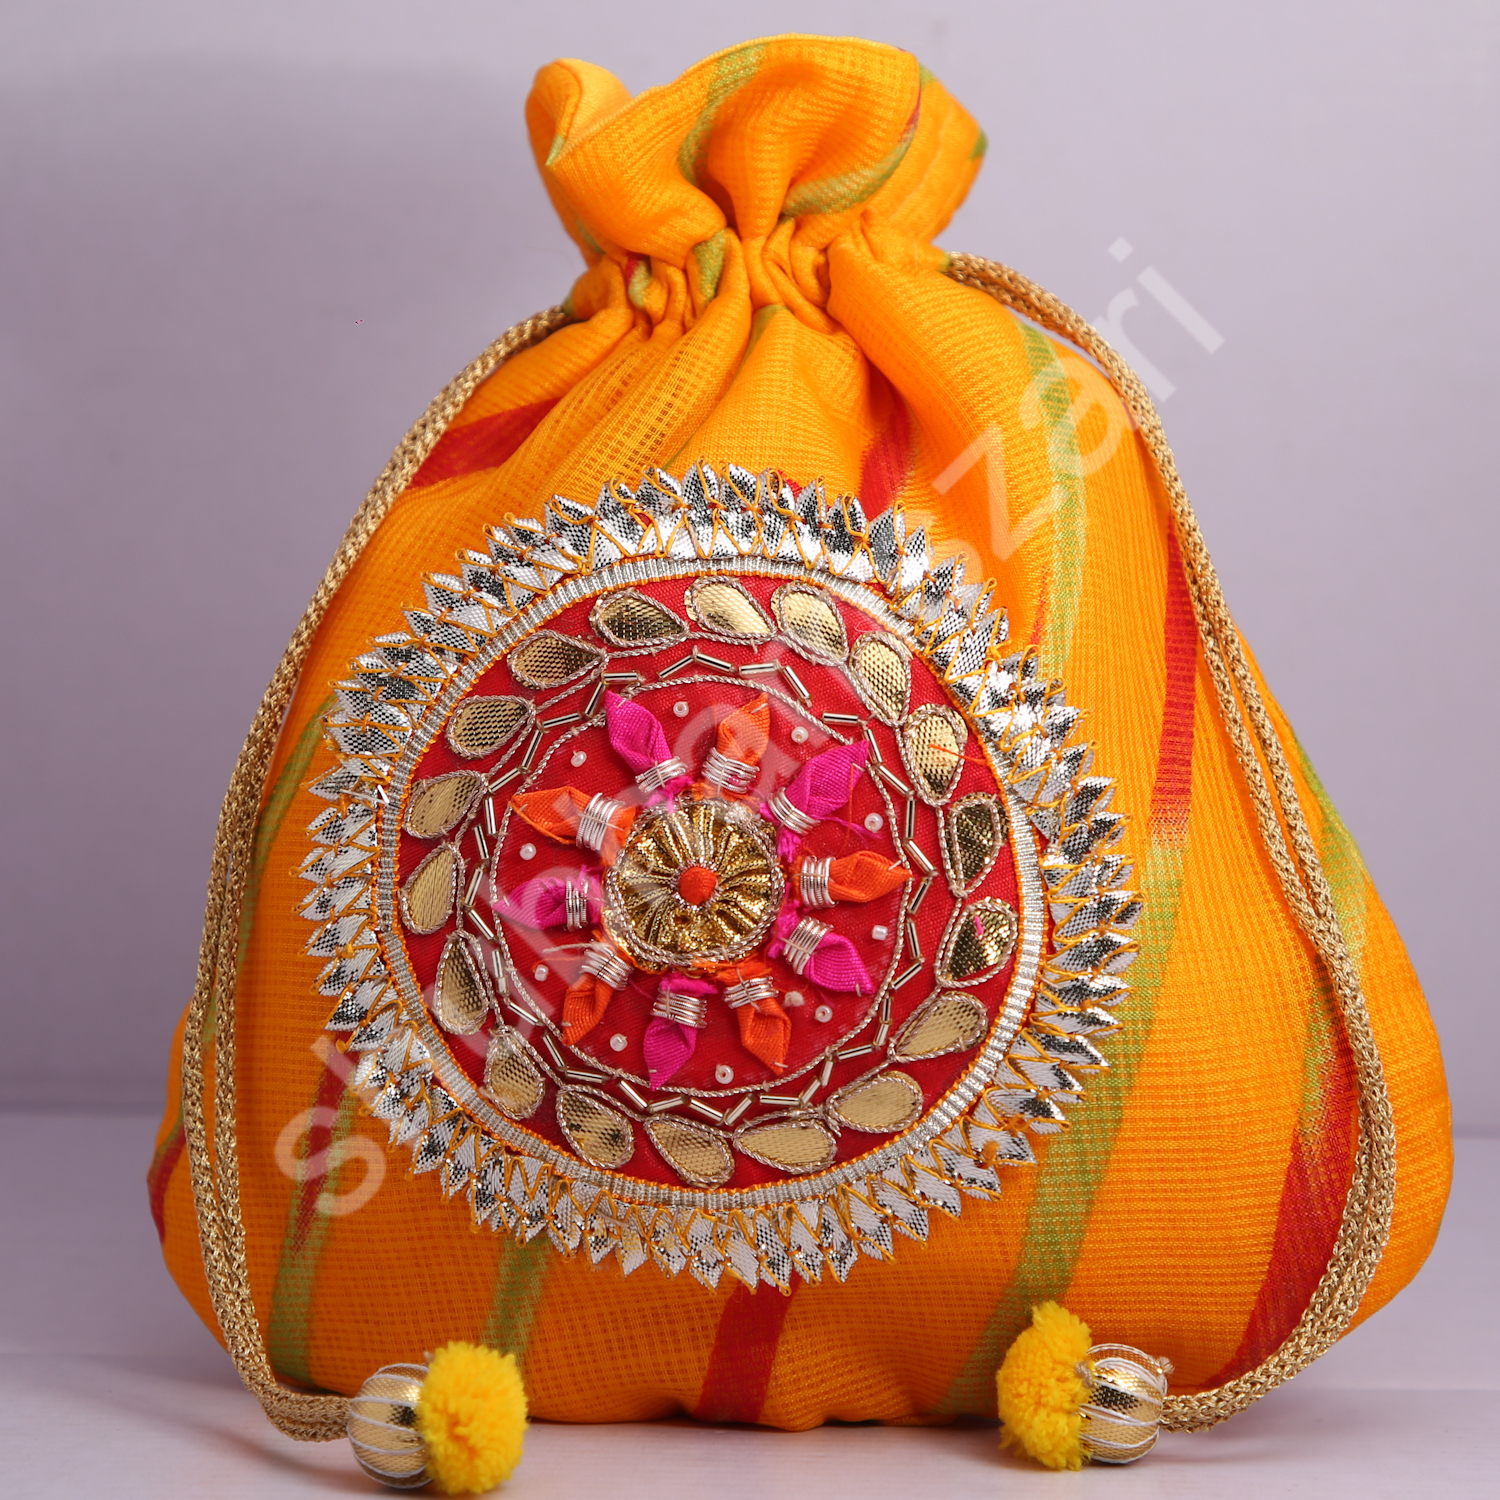 1.Wedding Hand Crafted Potli Bag With Beaded Chain For Women|| Evening Bags|| Embroidery Handbag